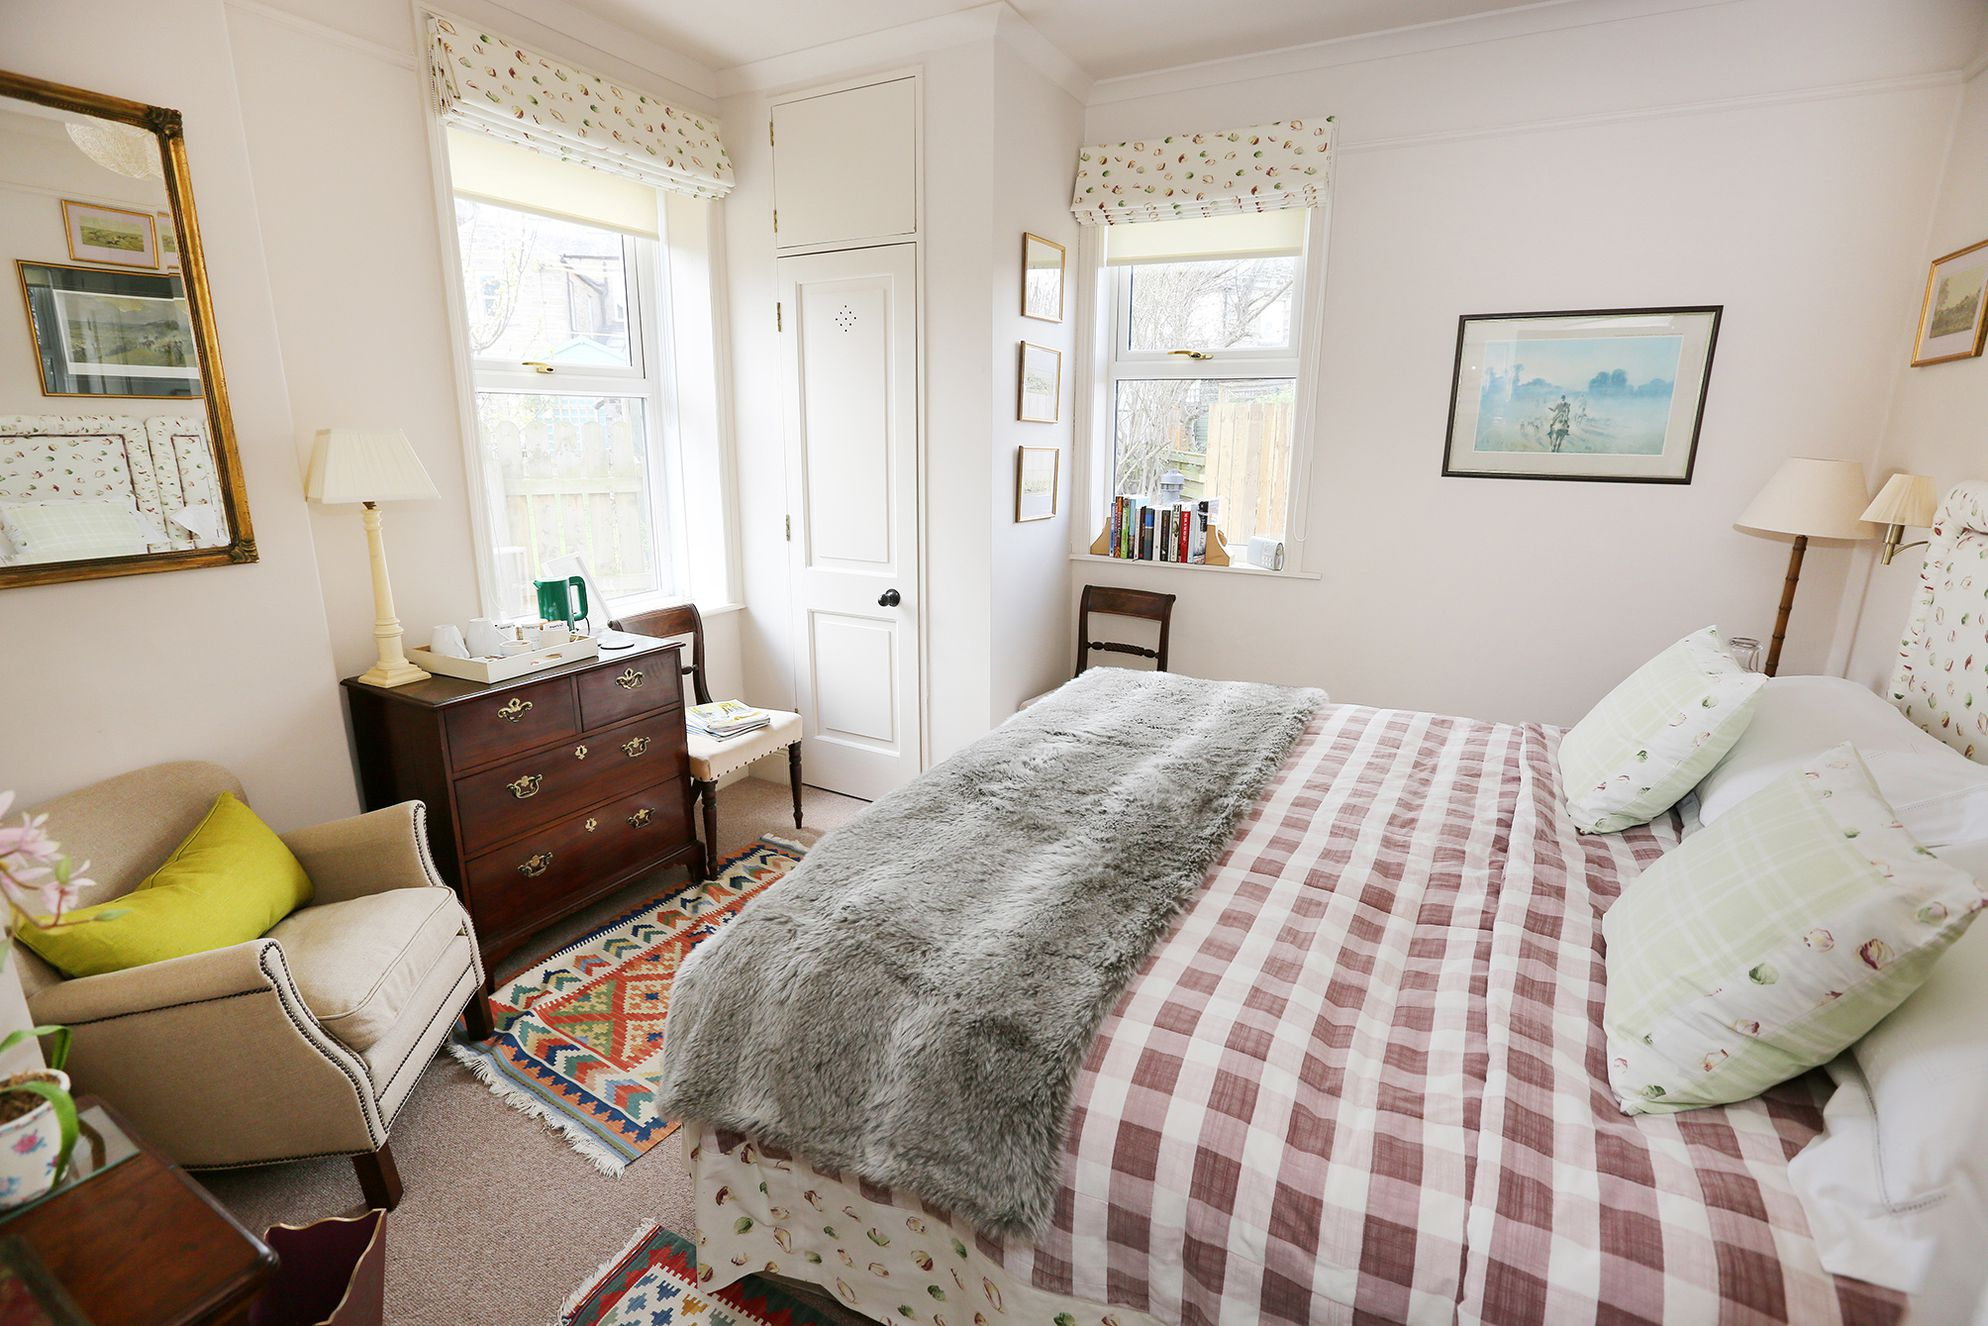 Double bedroom with a comfy armchair and a couple of chairs for relaxing in, as well as big windows letting lots of light in